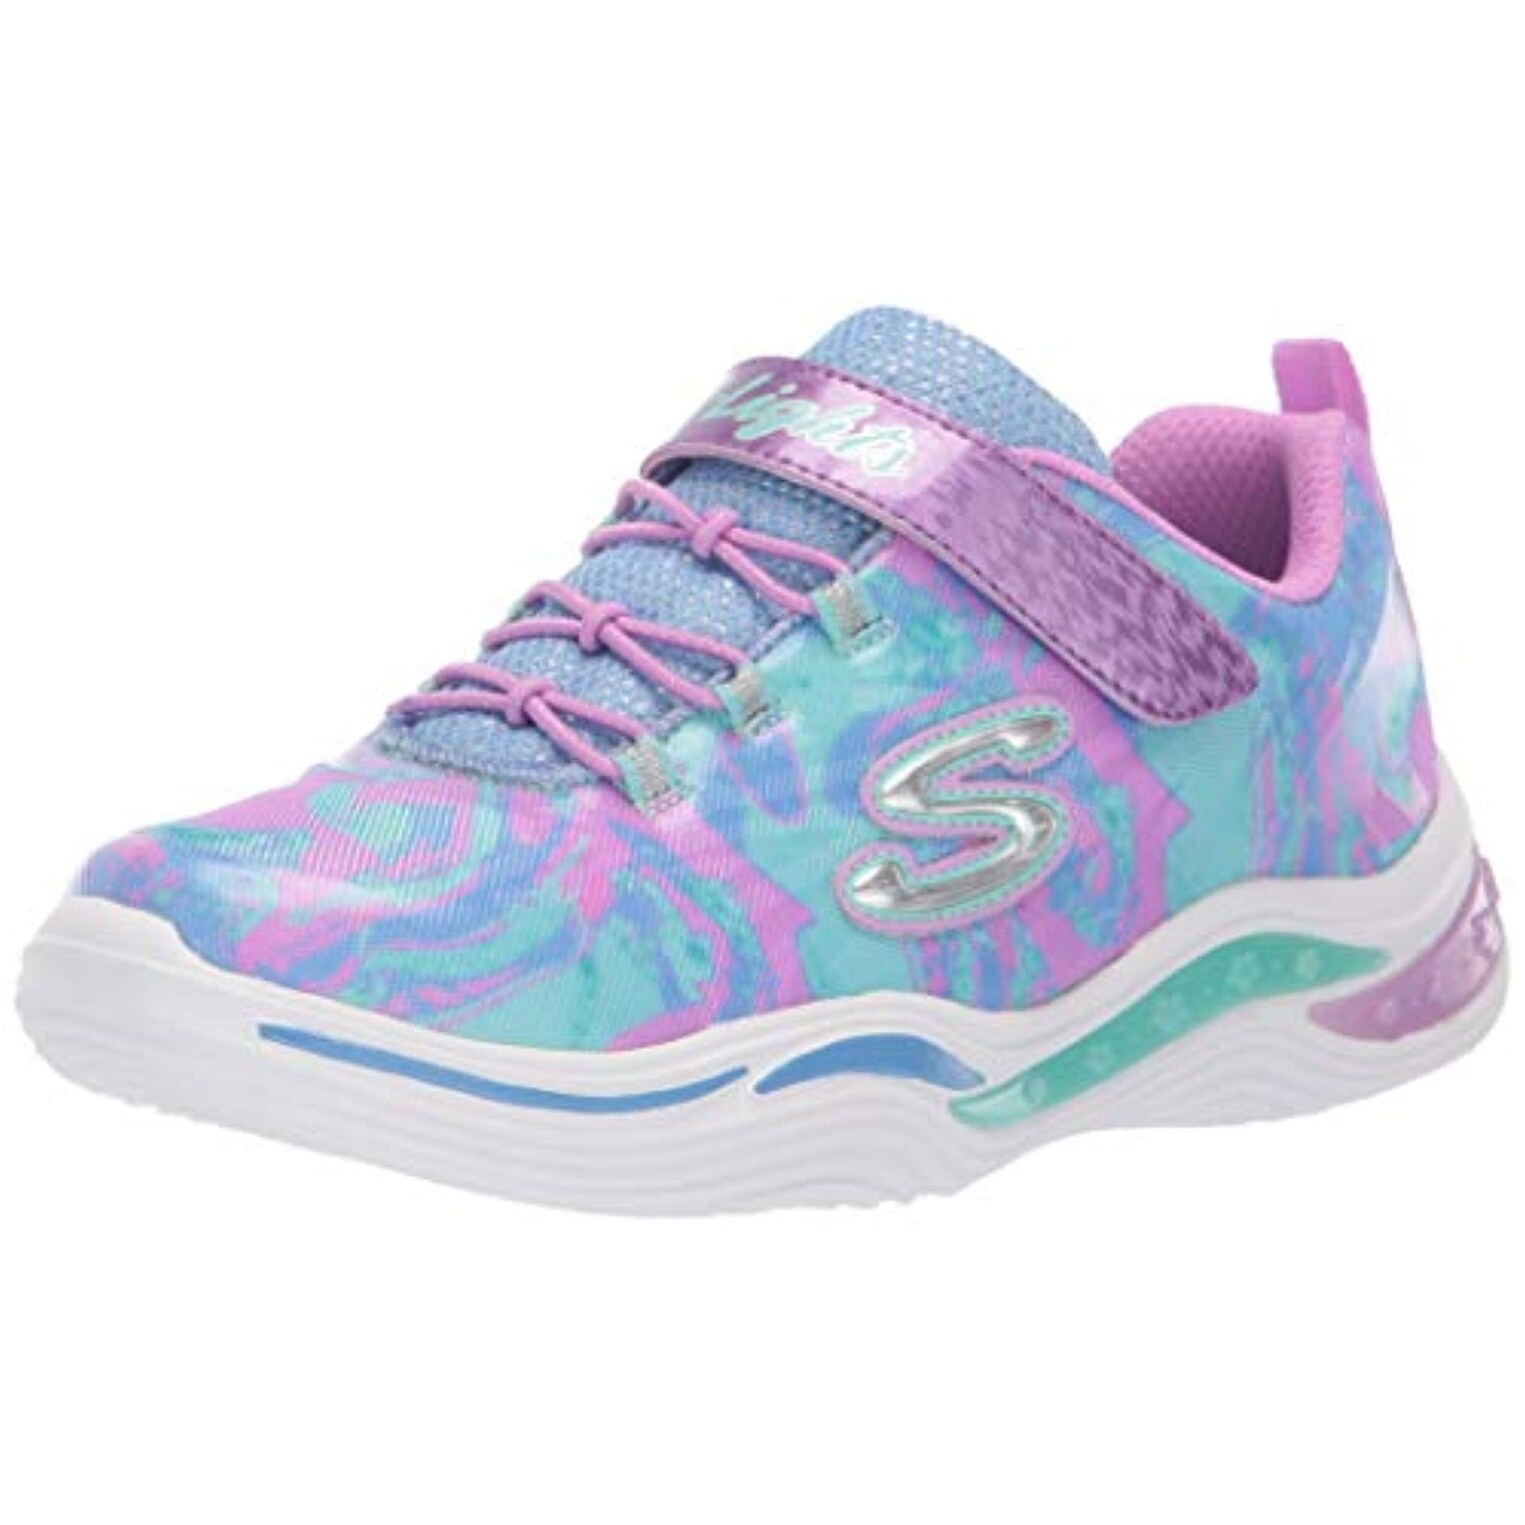 Skechers Girls' Shoes | Find Great Shoes Deals Shopping at